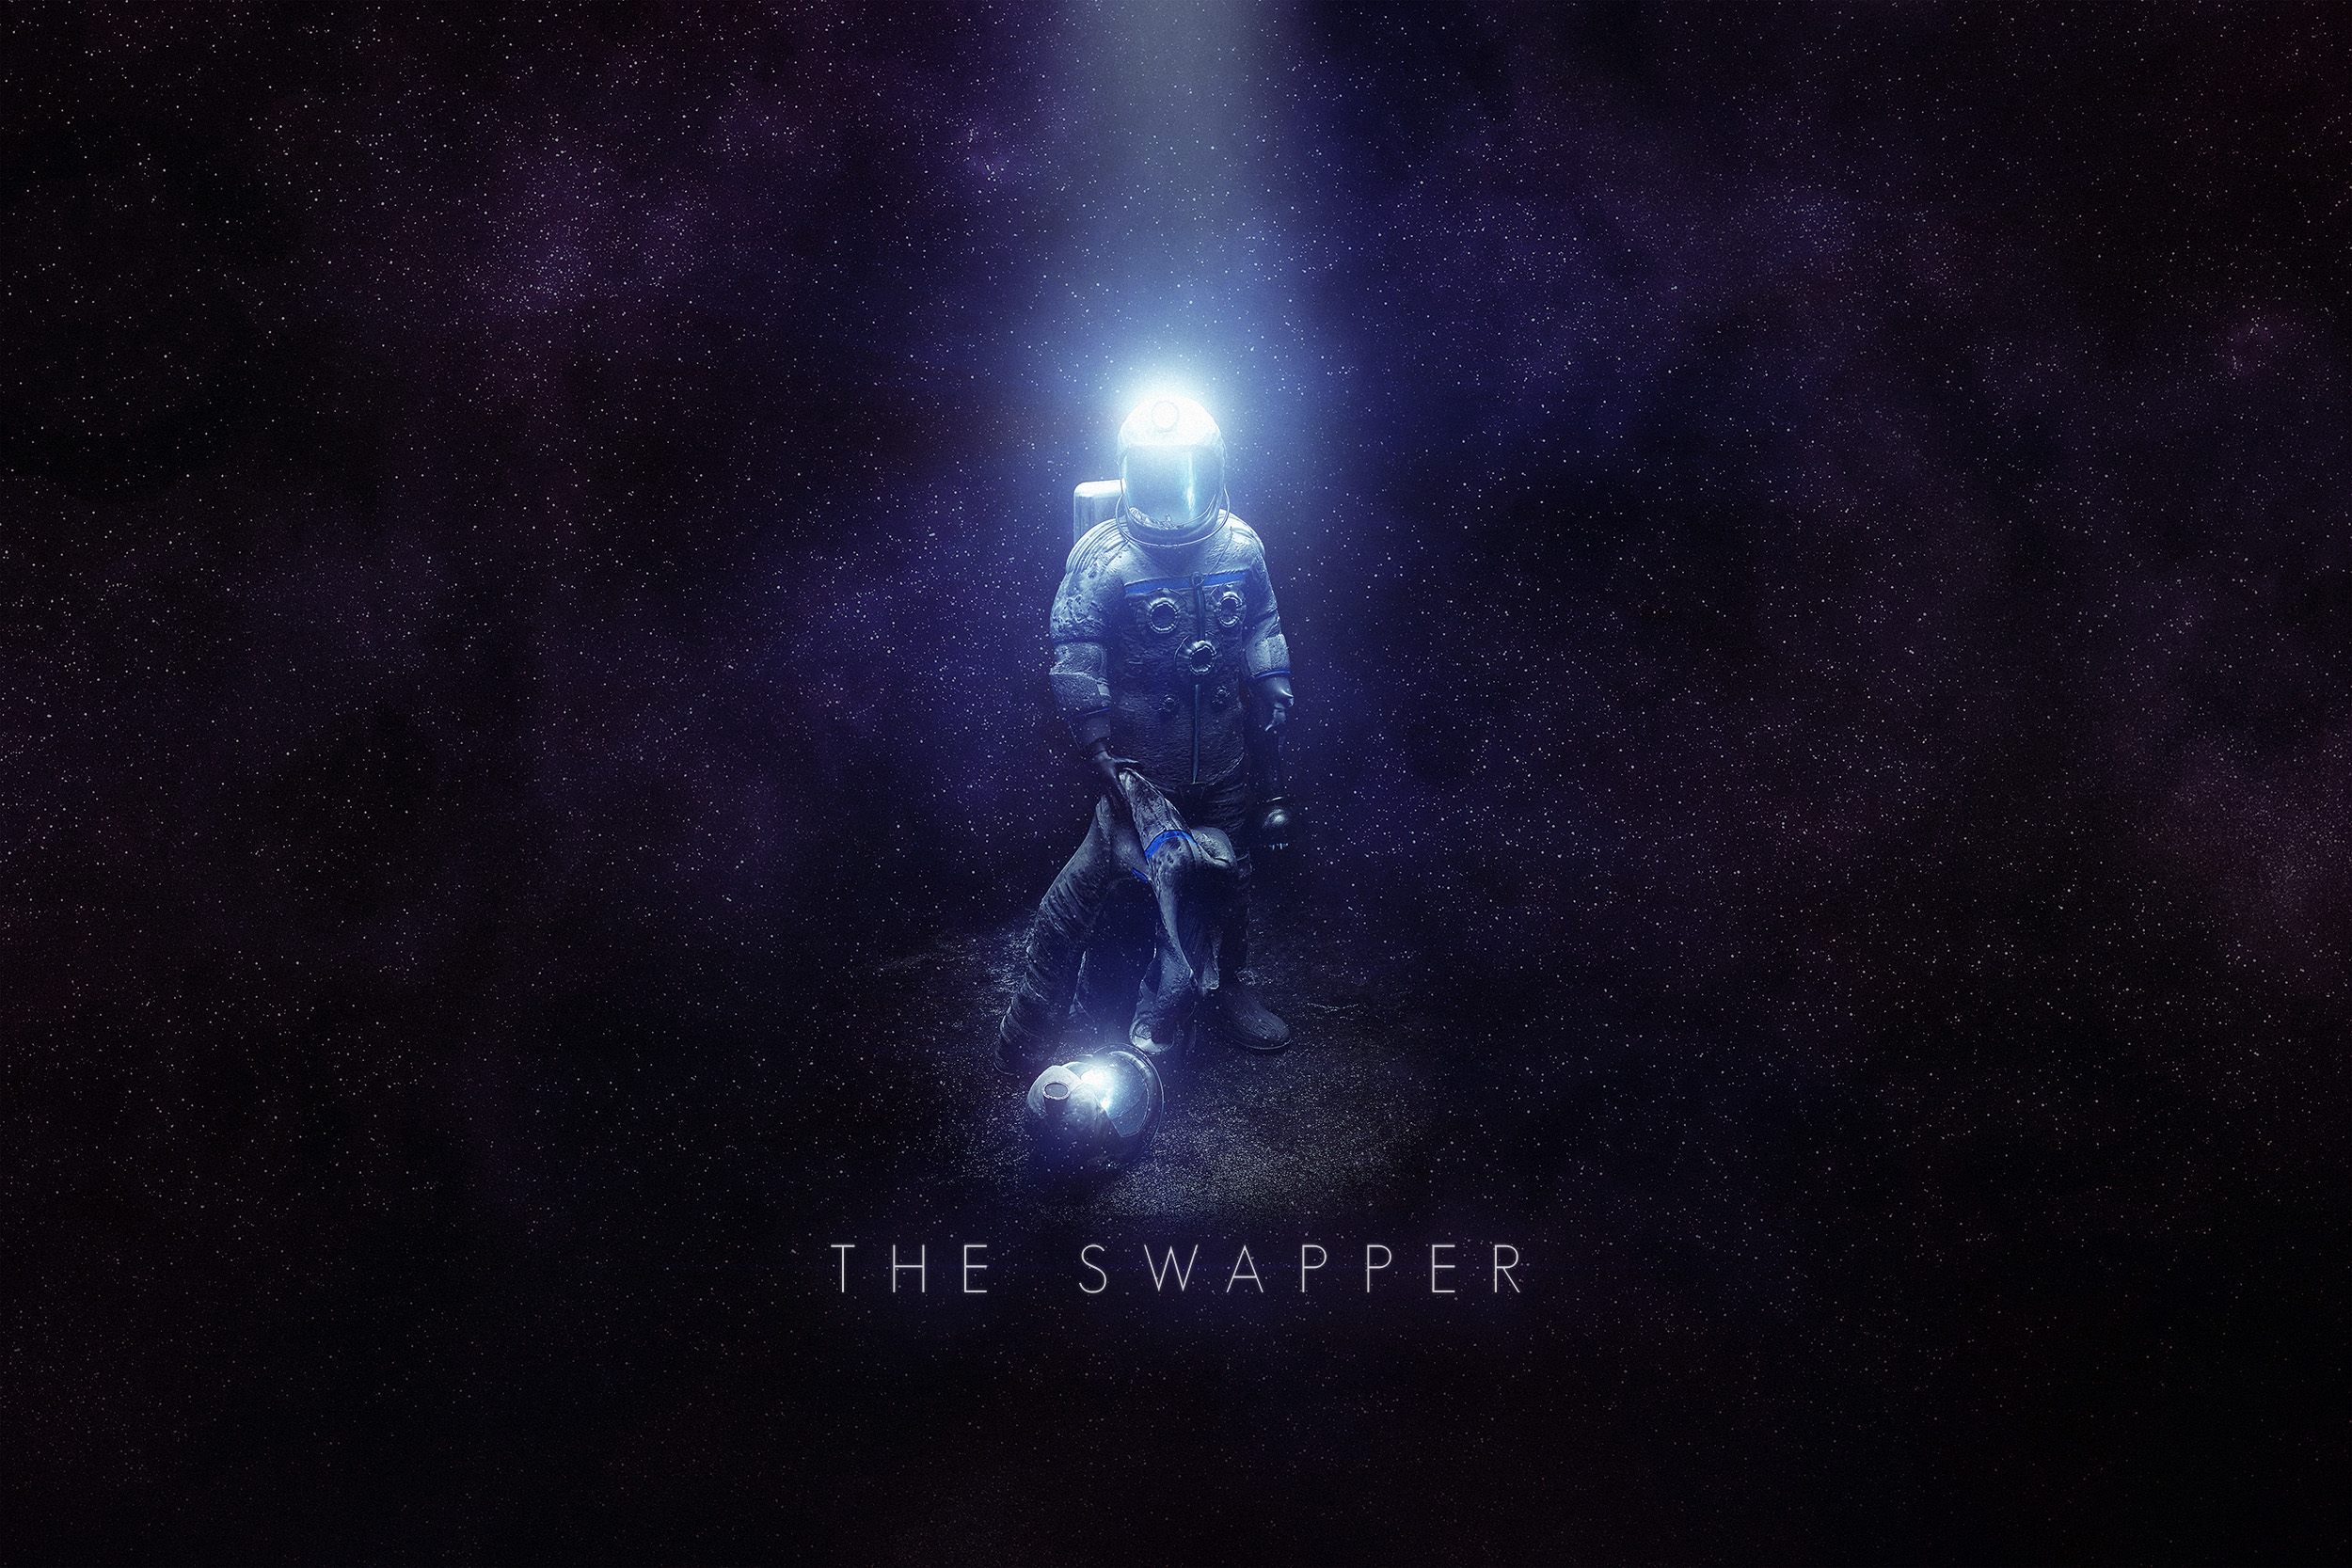 the swapper cover art with logo.jpg